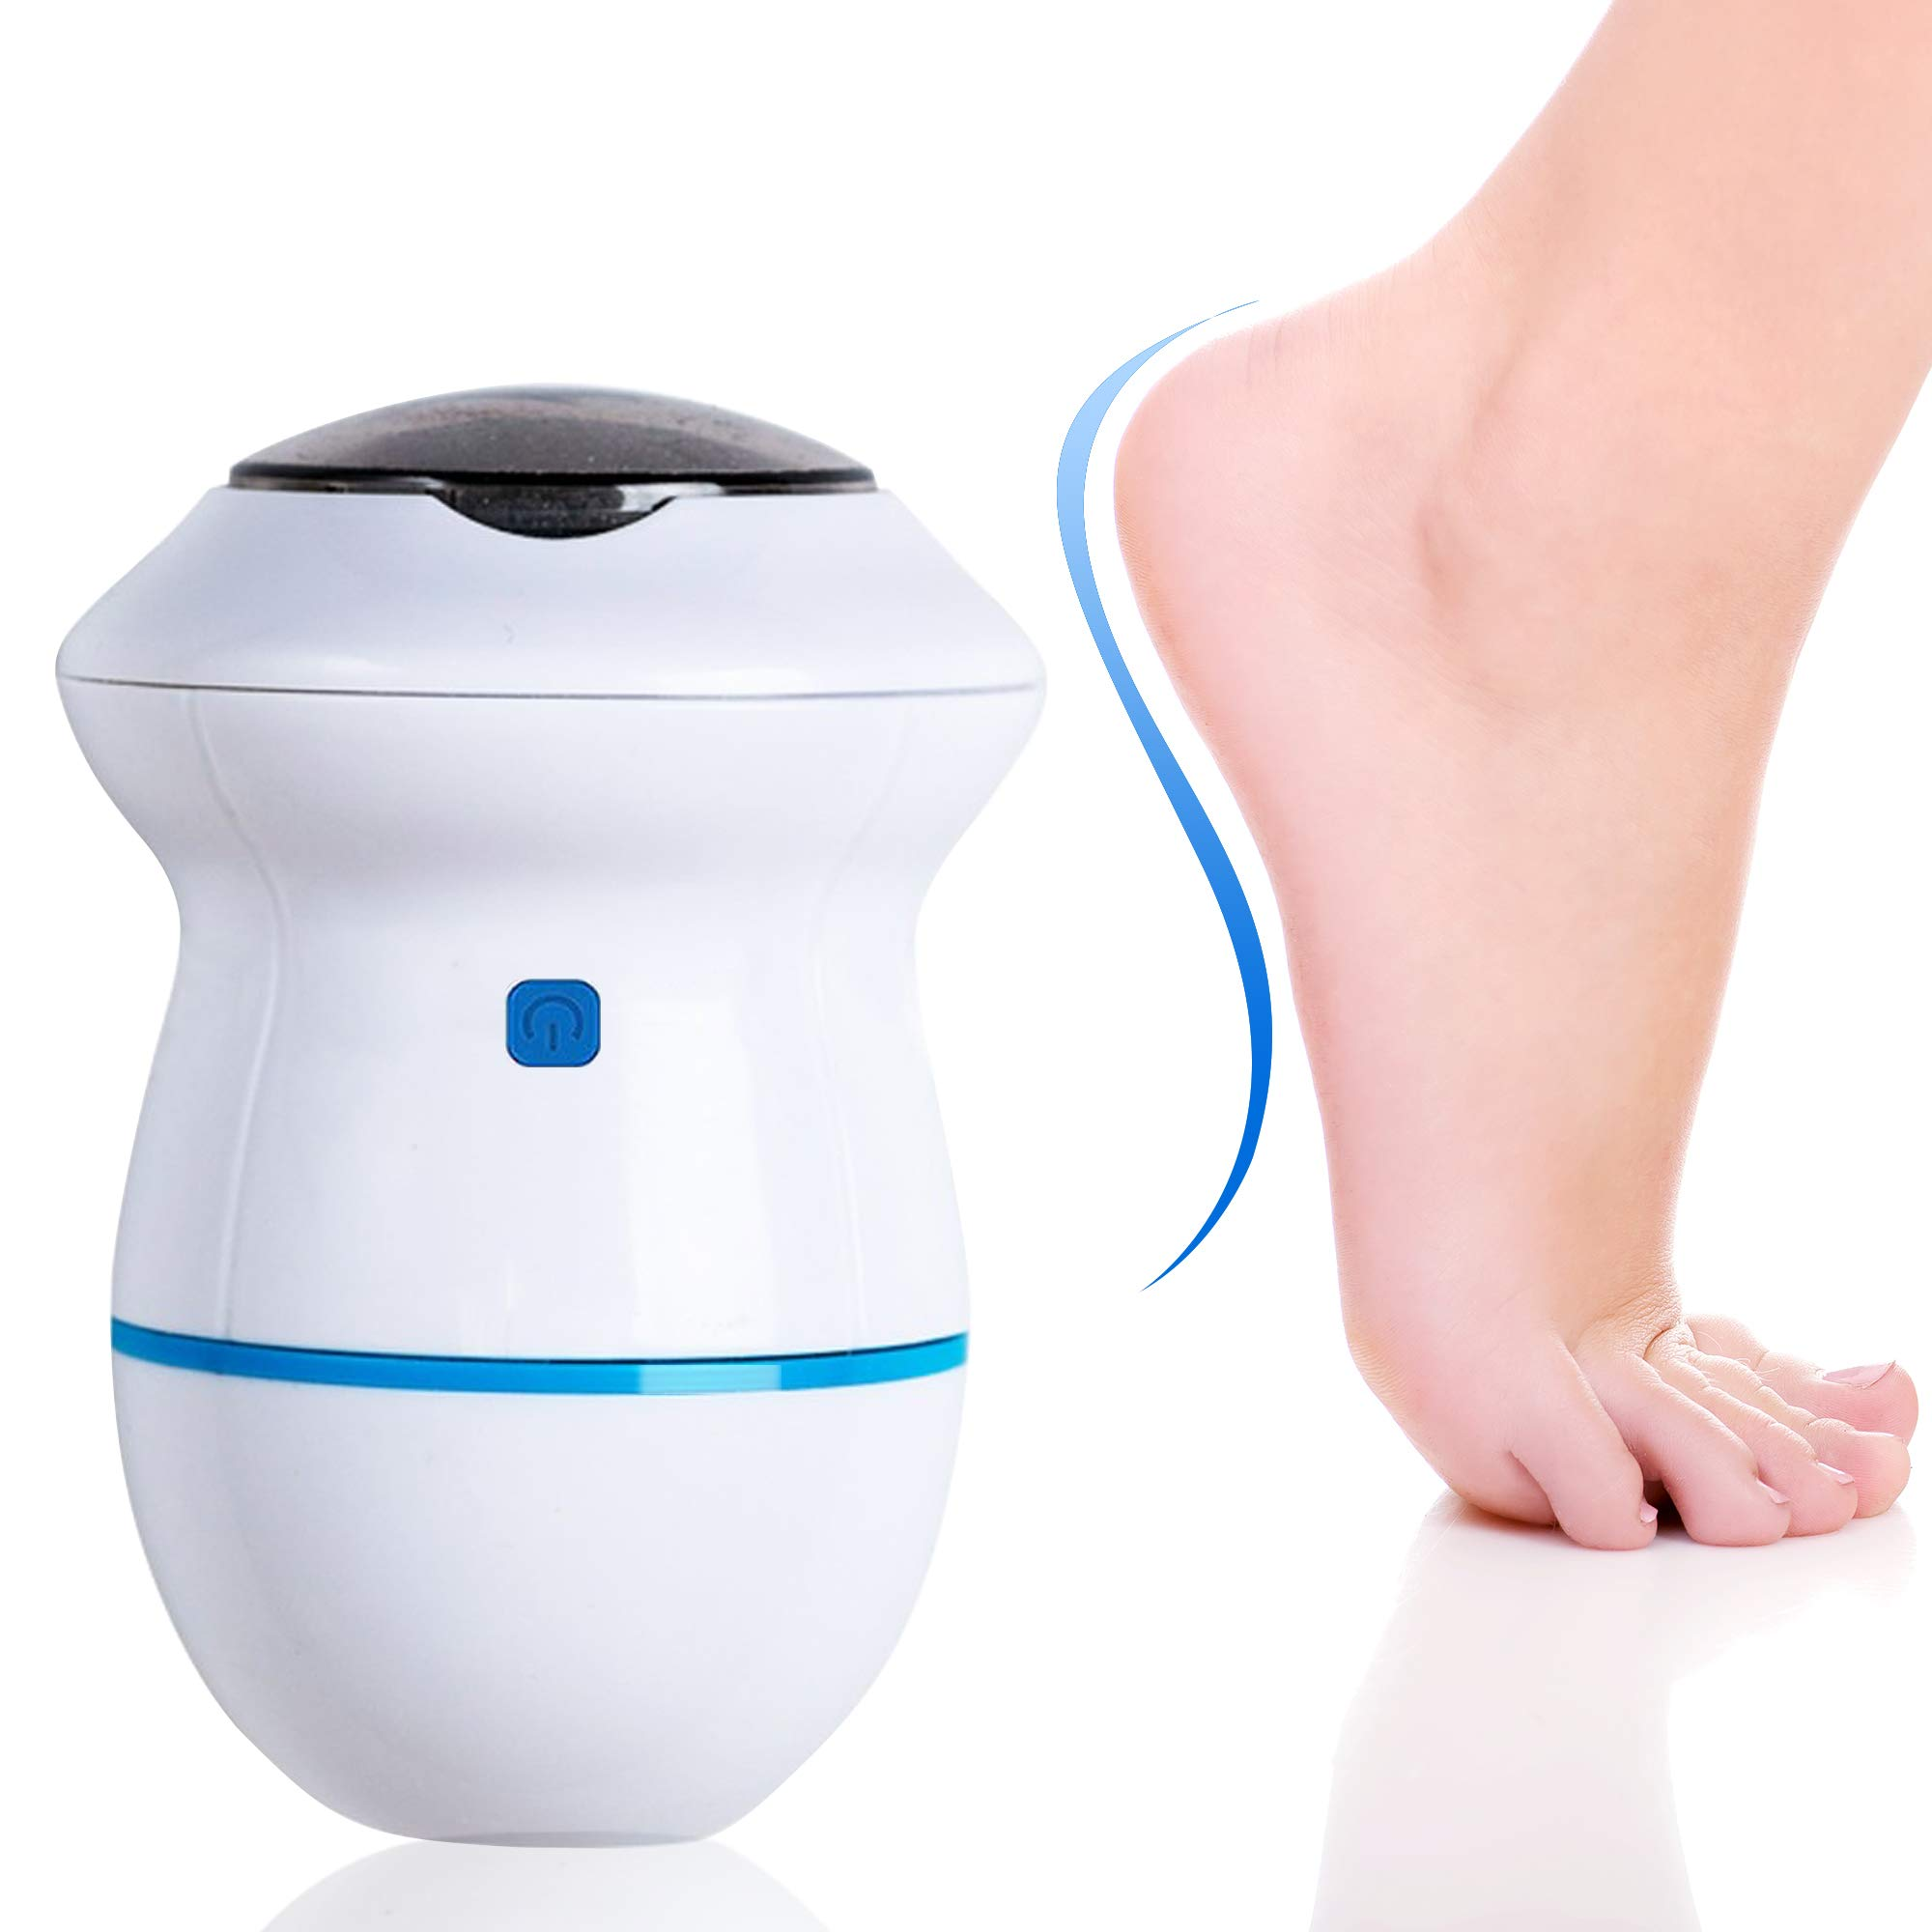 Portable Electric Foot Grinder - USB Electronic Foot File Pedicure Tools, Dual-Speed Càllus Remover - Feet Care Perfect for Dead,Hard Cracked Dry Skin(Blue)